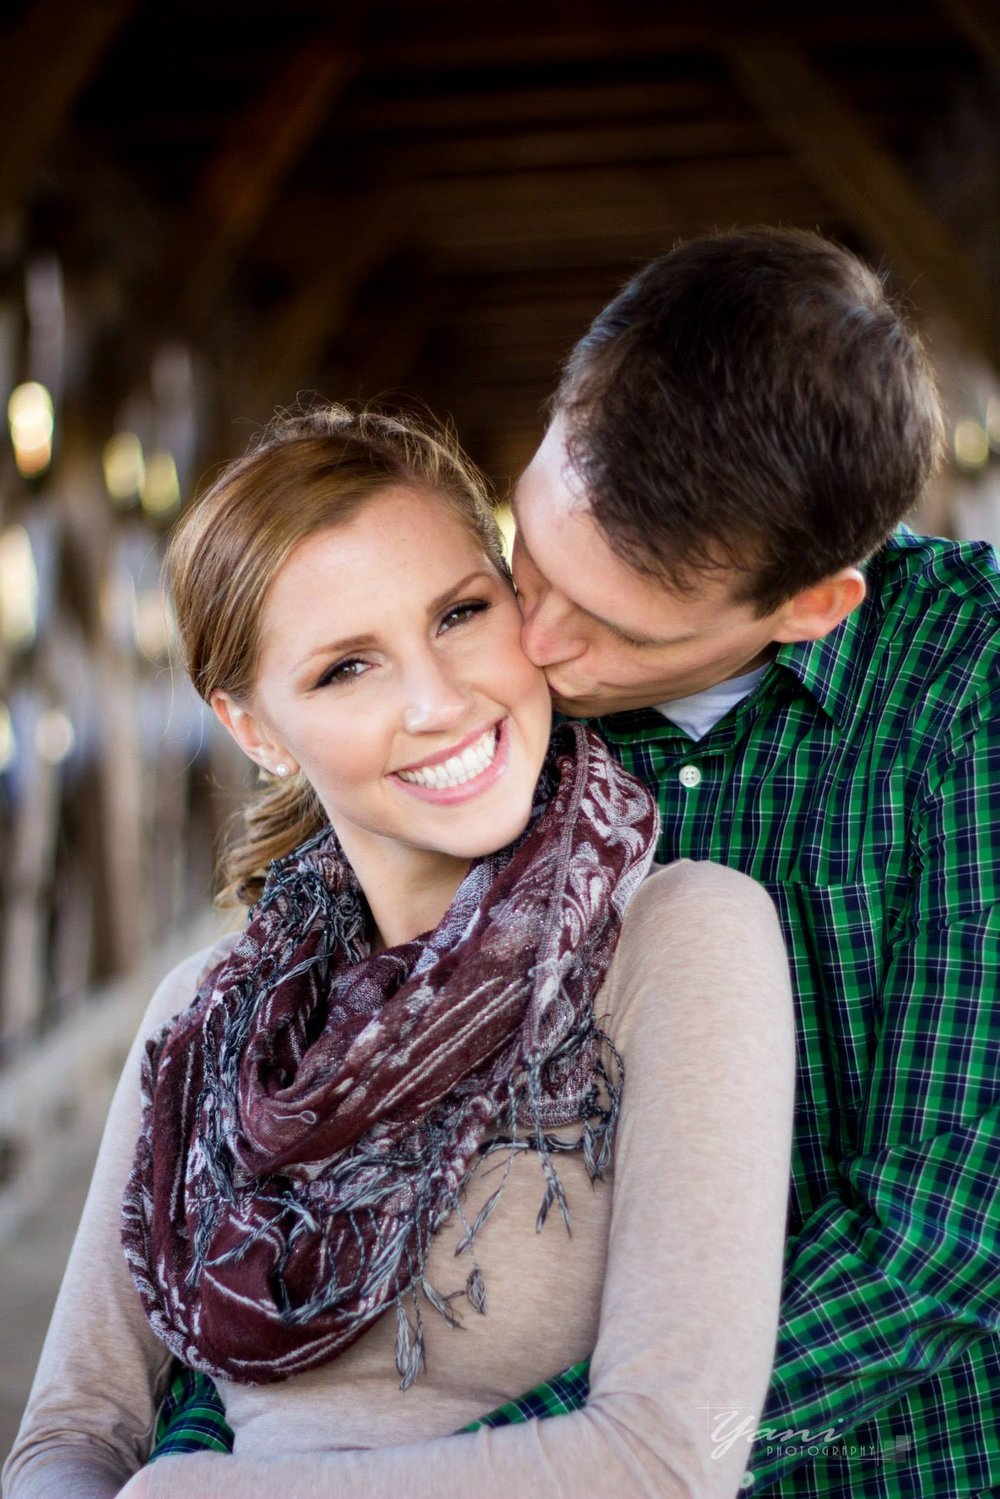 PERFECT LOCATIONS IN GUELPH ONTARIO FOR ENGAGEMENT / WEDDING PHOTOGRAPHY | YANI MACUTE PHOTOGRAPHY